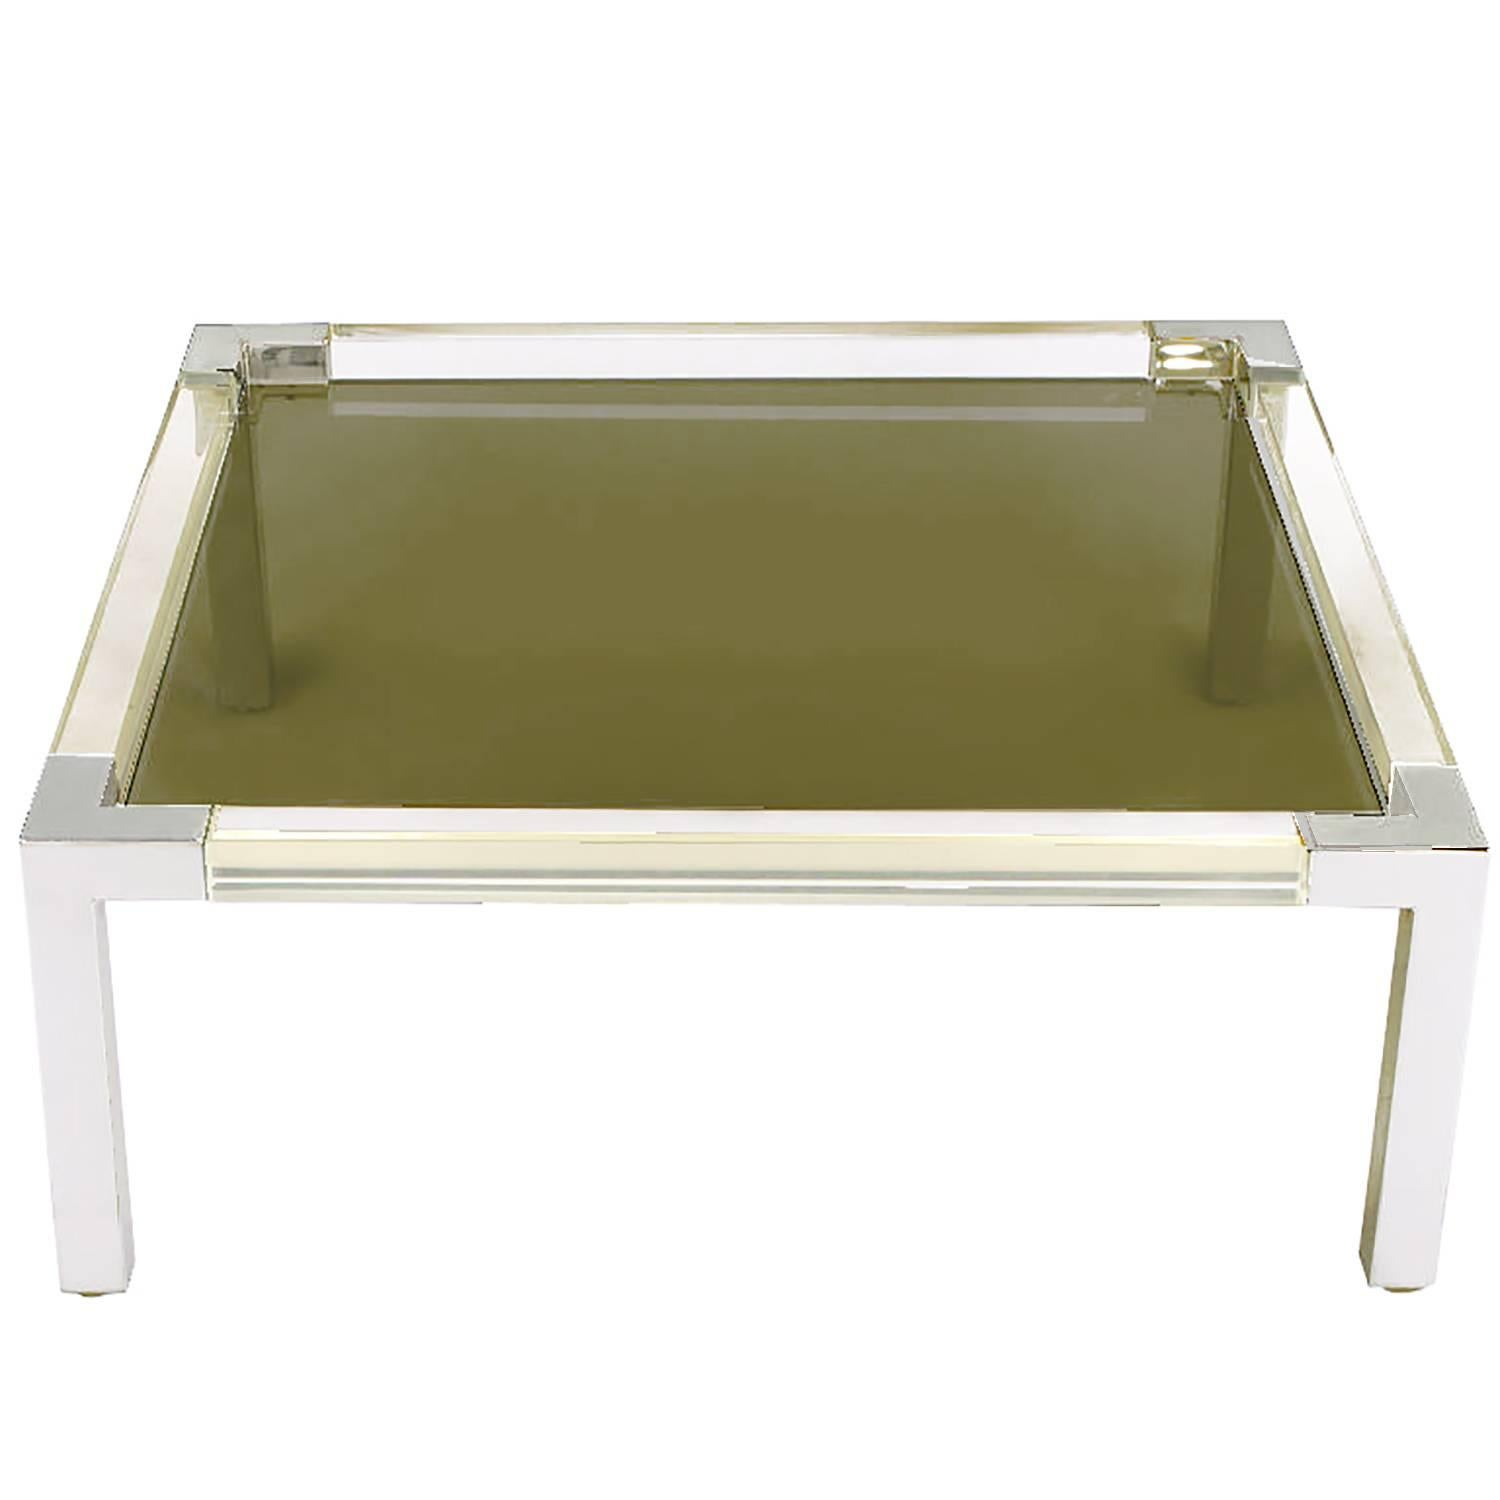 Chrome and Lucite Coffee Table with Smoked Glass Top